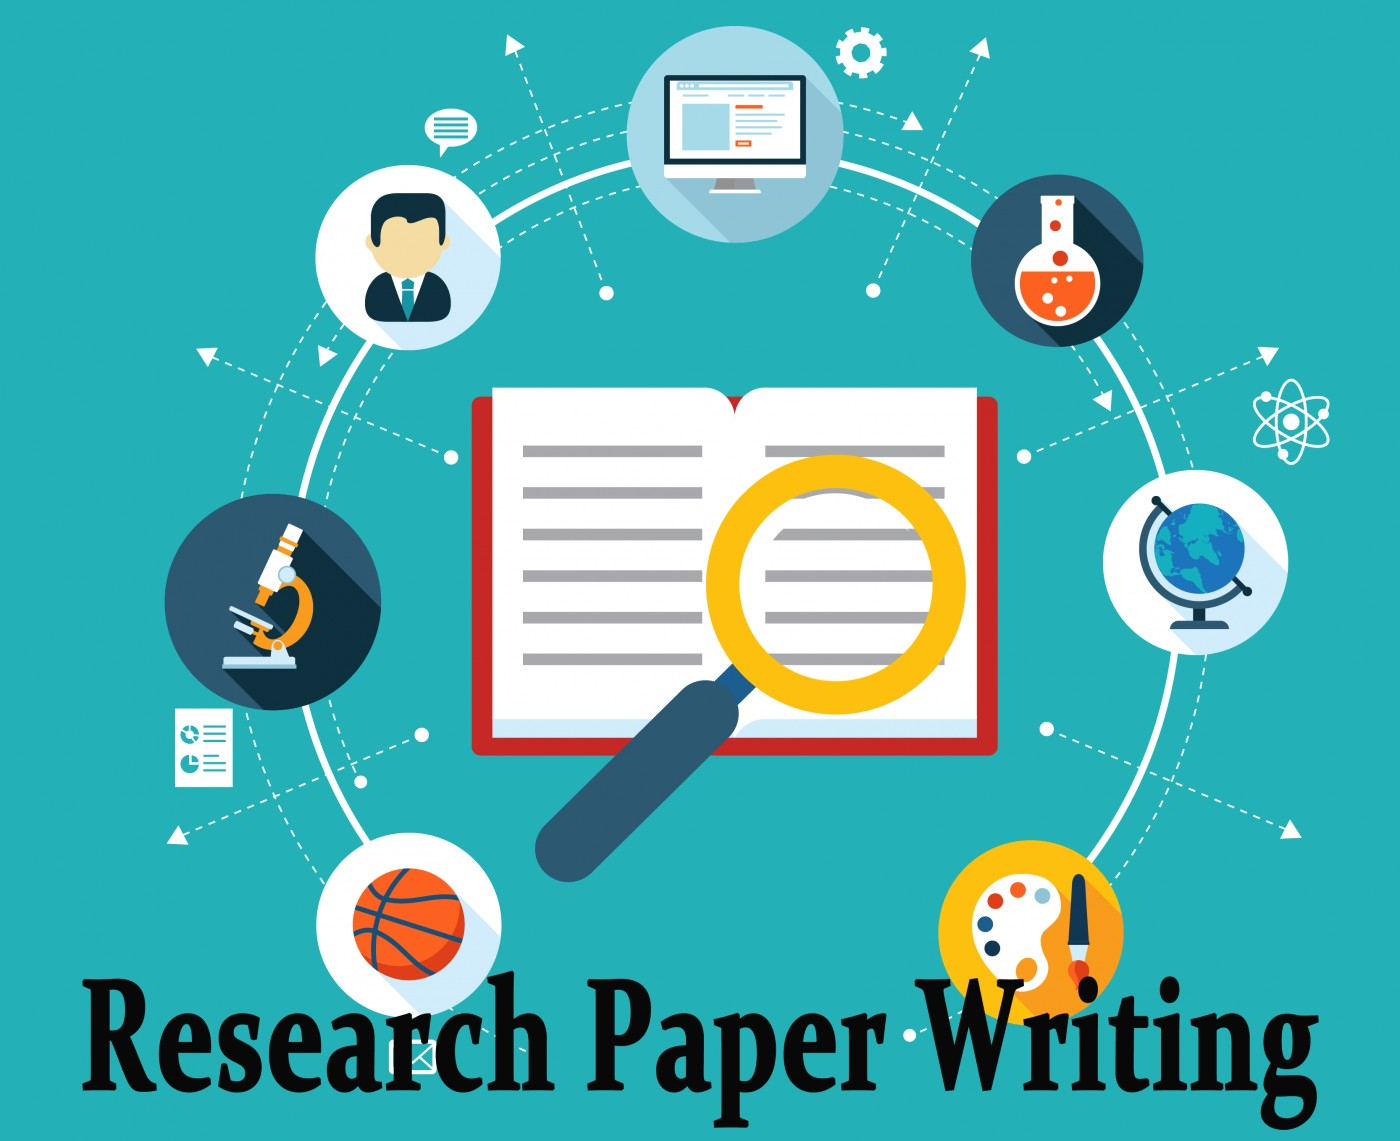 014 503 Effective Research Writing Researchs Fascinating Papers Paper Format Example Pdf Software Free Download Ppt 1400